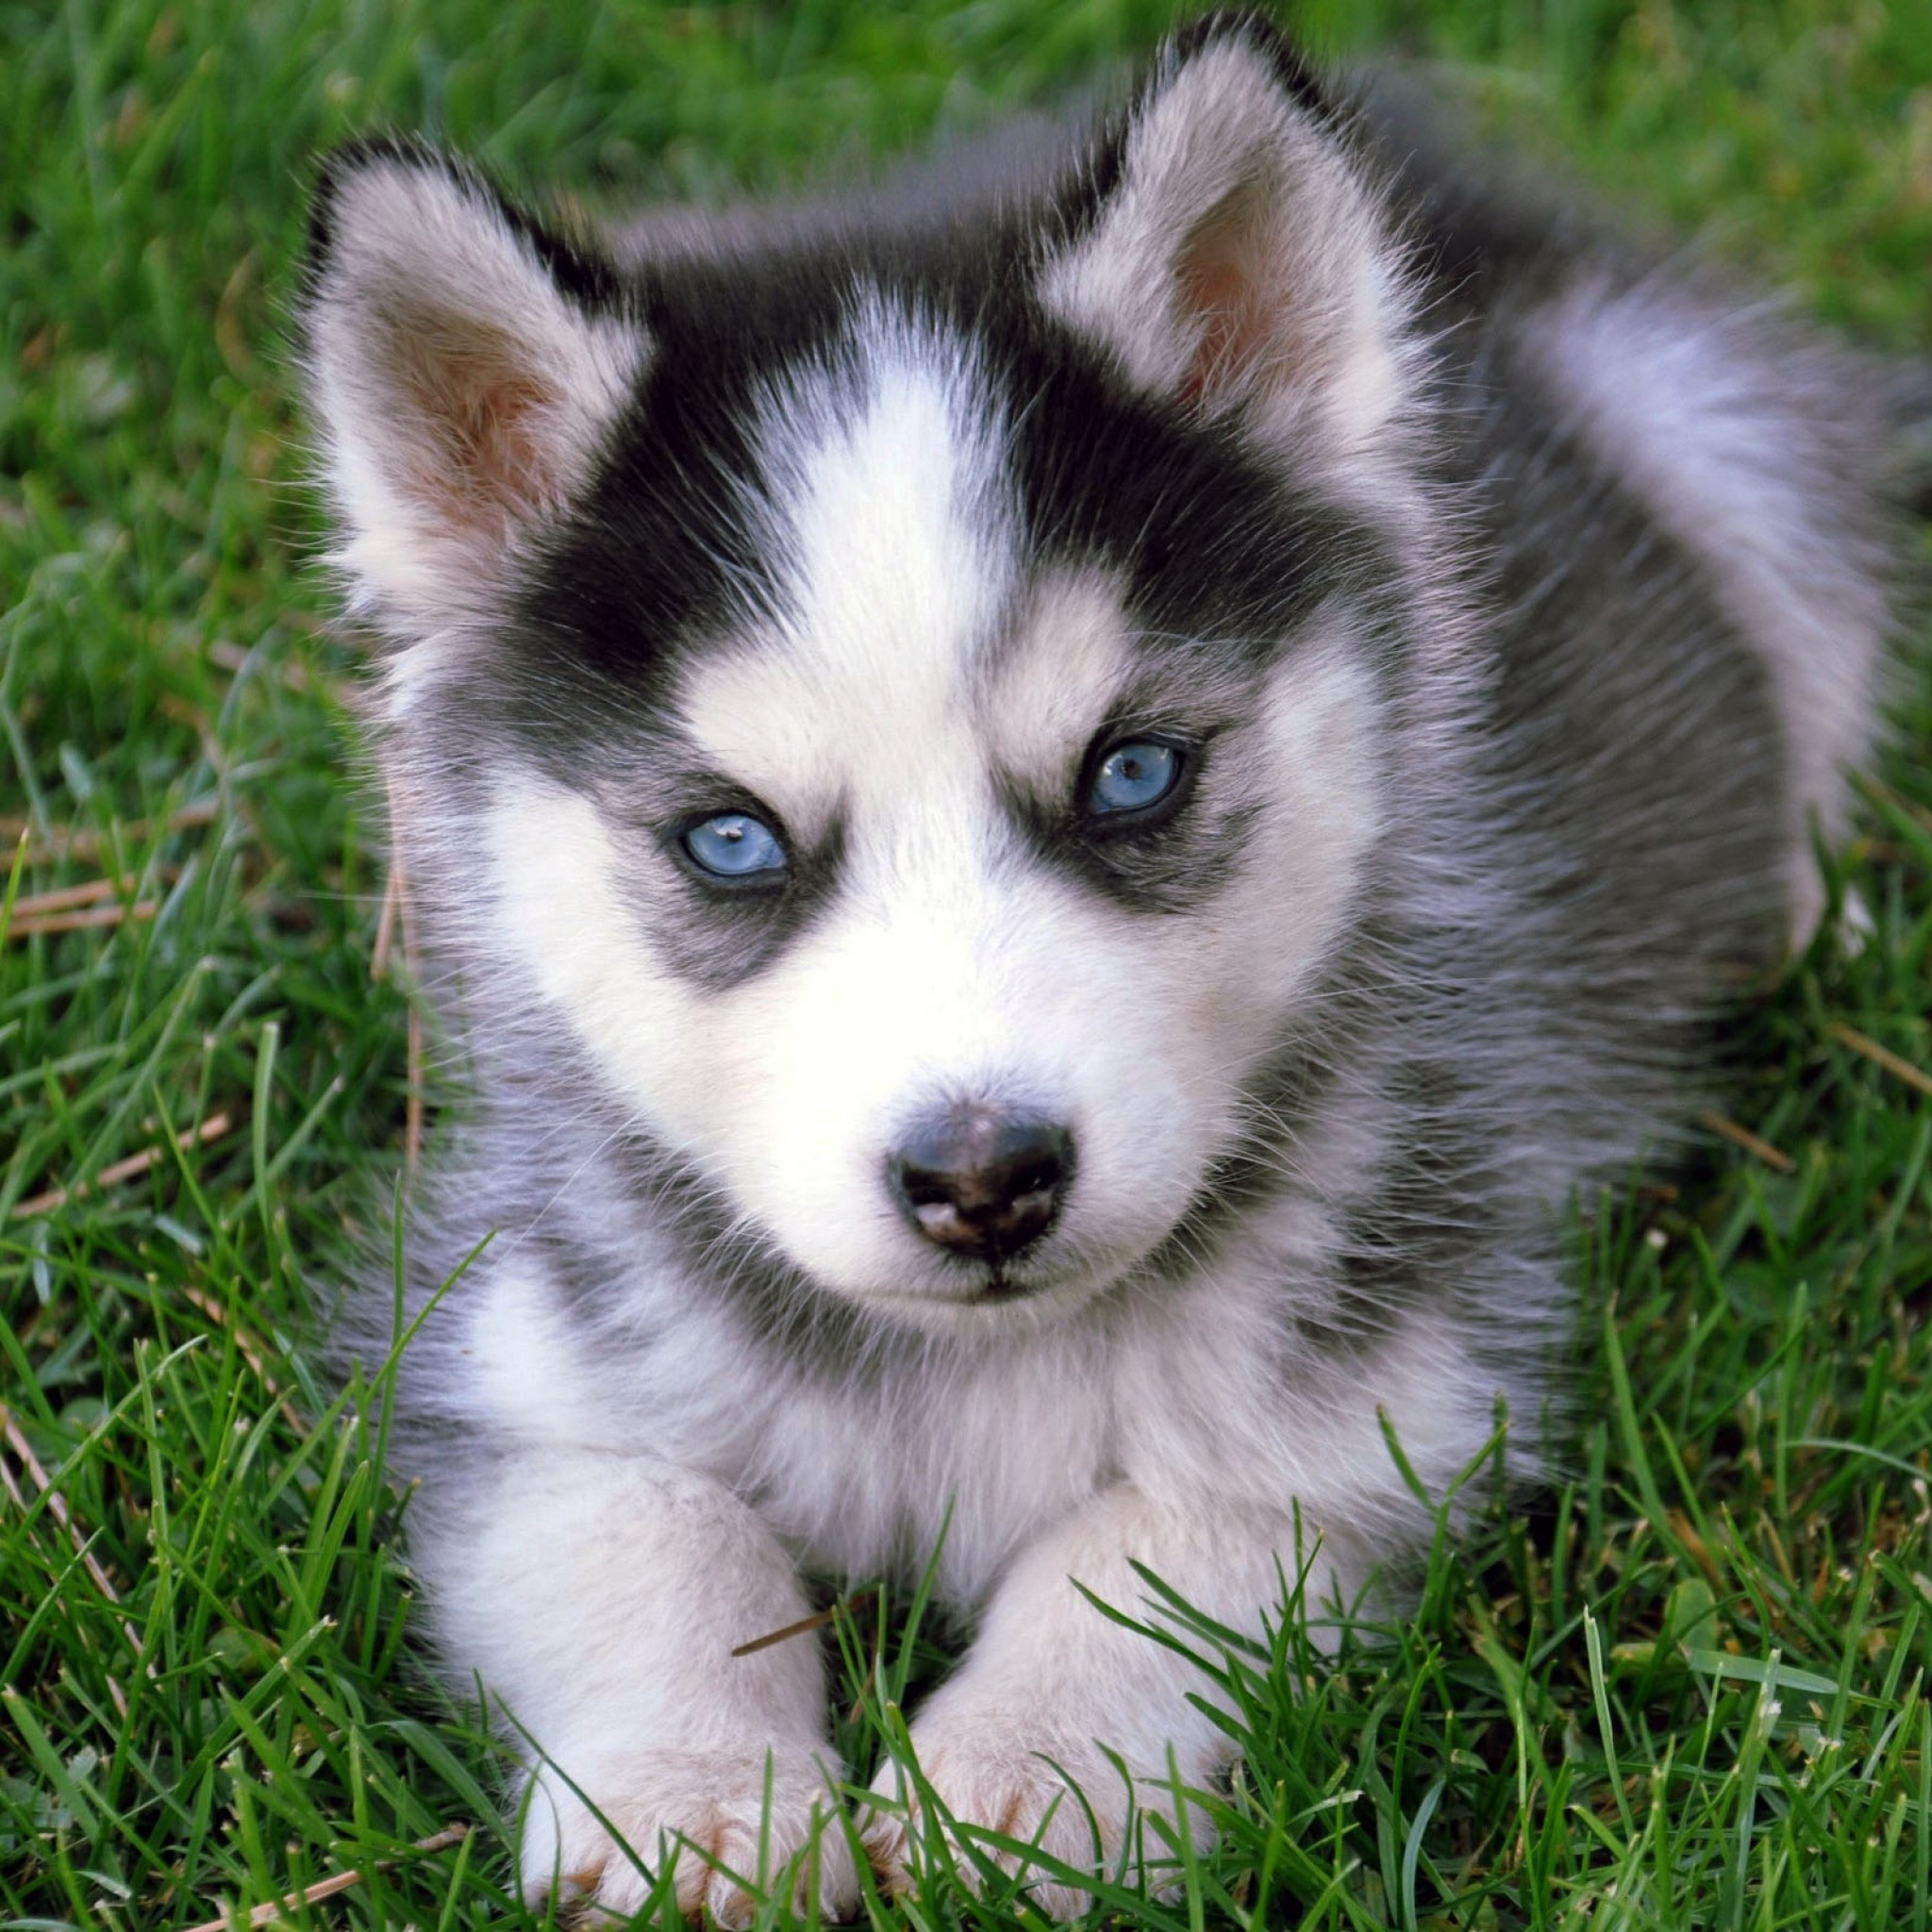 Husky Dog Hd Wallpapers Baby Wolf Wallpaper 183 ①